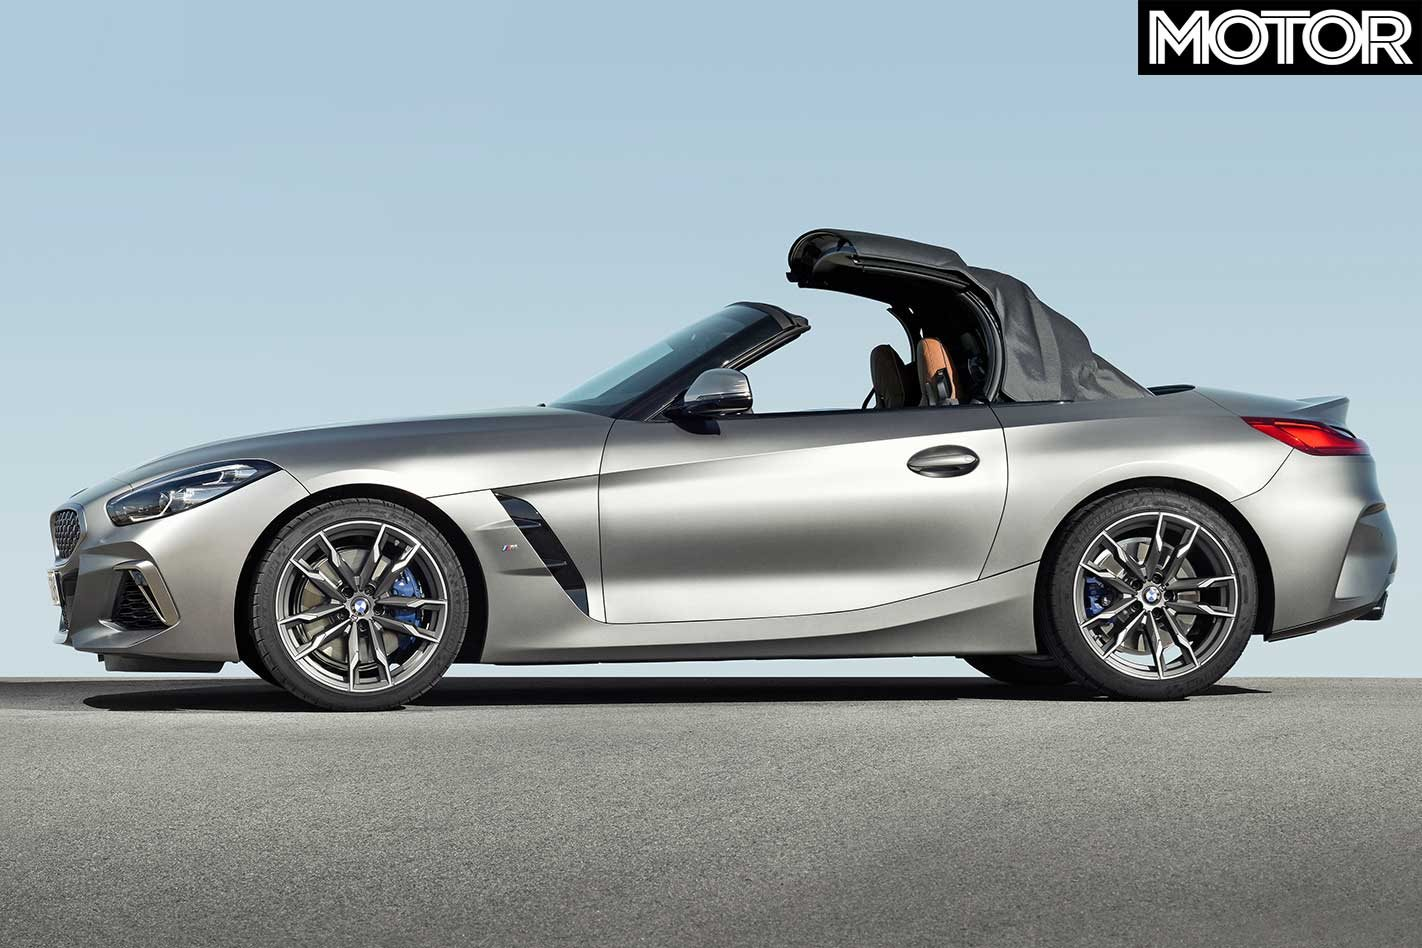 2019 Bmw Z4 M40i Performance Review Motor Magazine